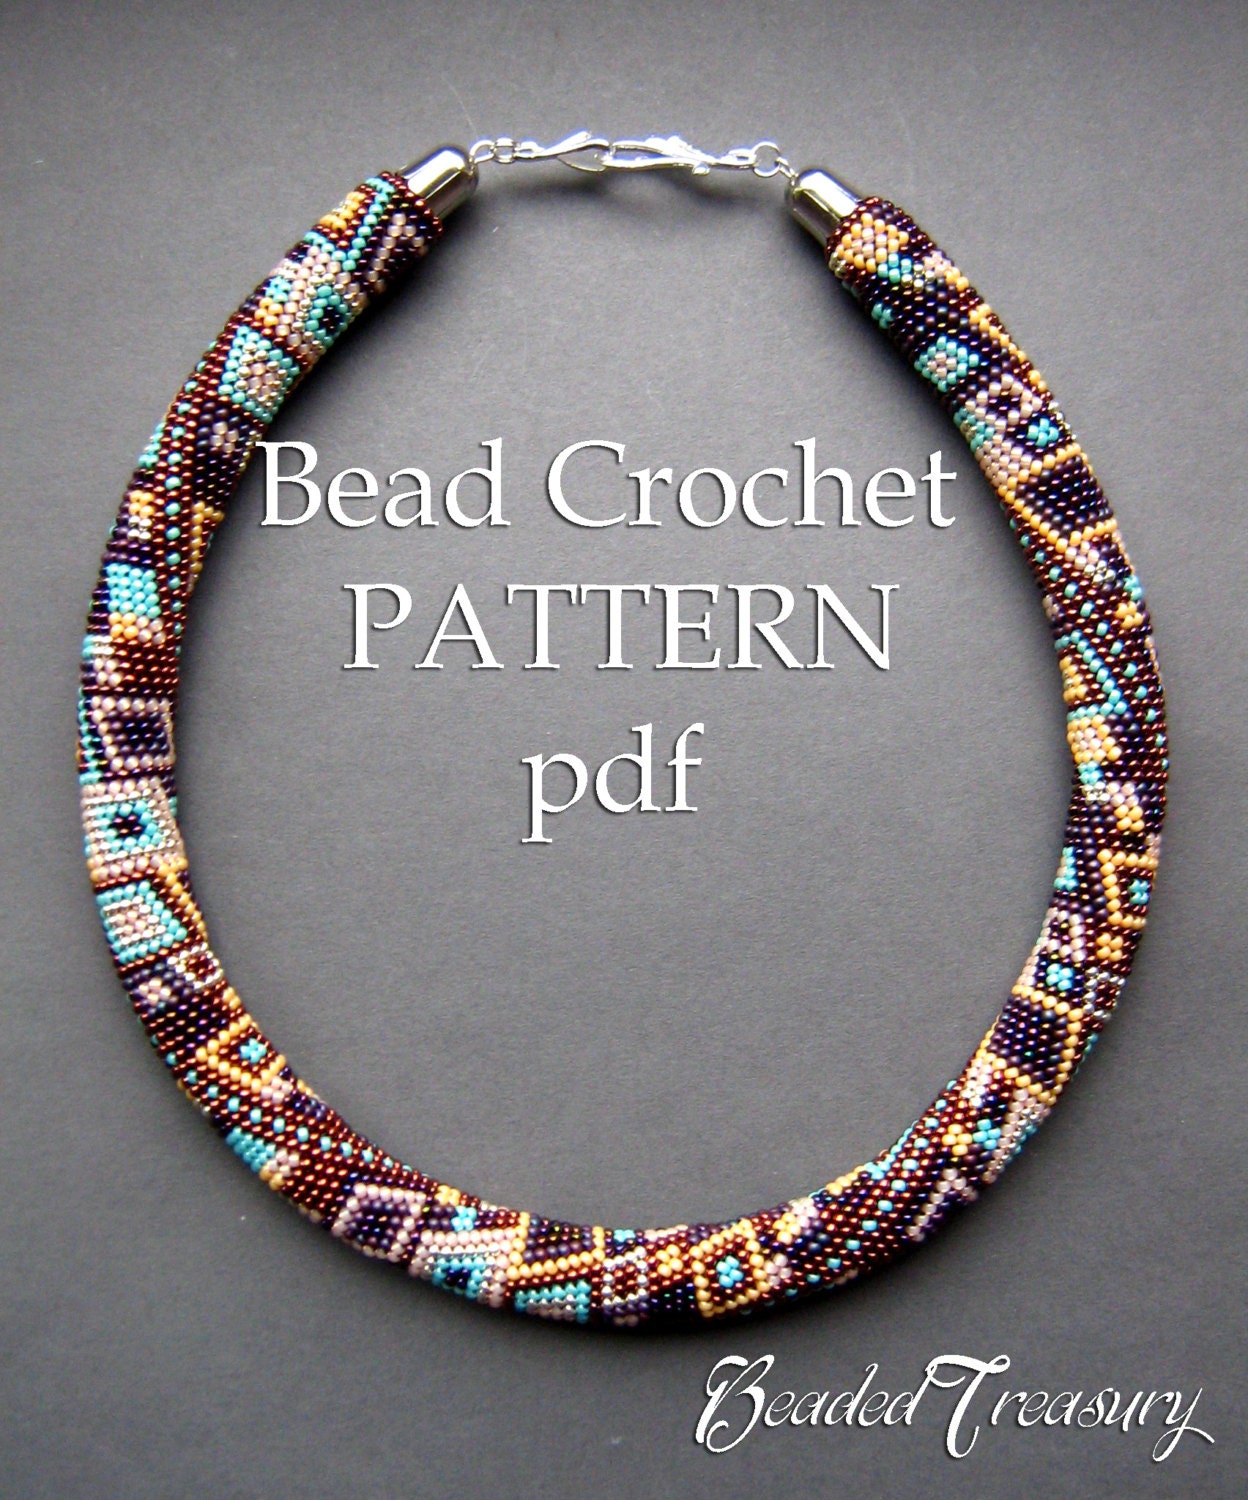 Skyscraper bead crochet pattern seed bead necklace beaded zoom bankloansurffo Image collections